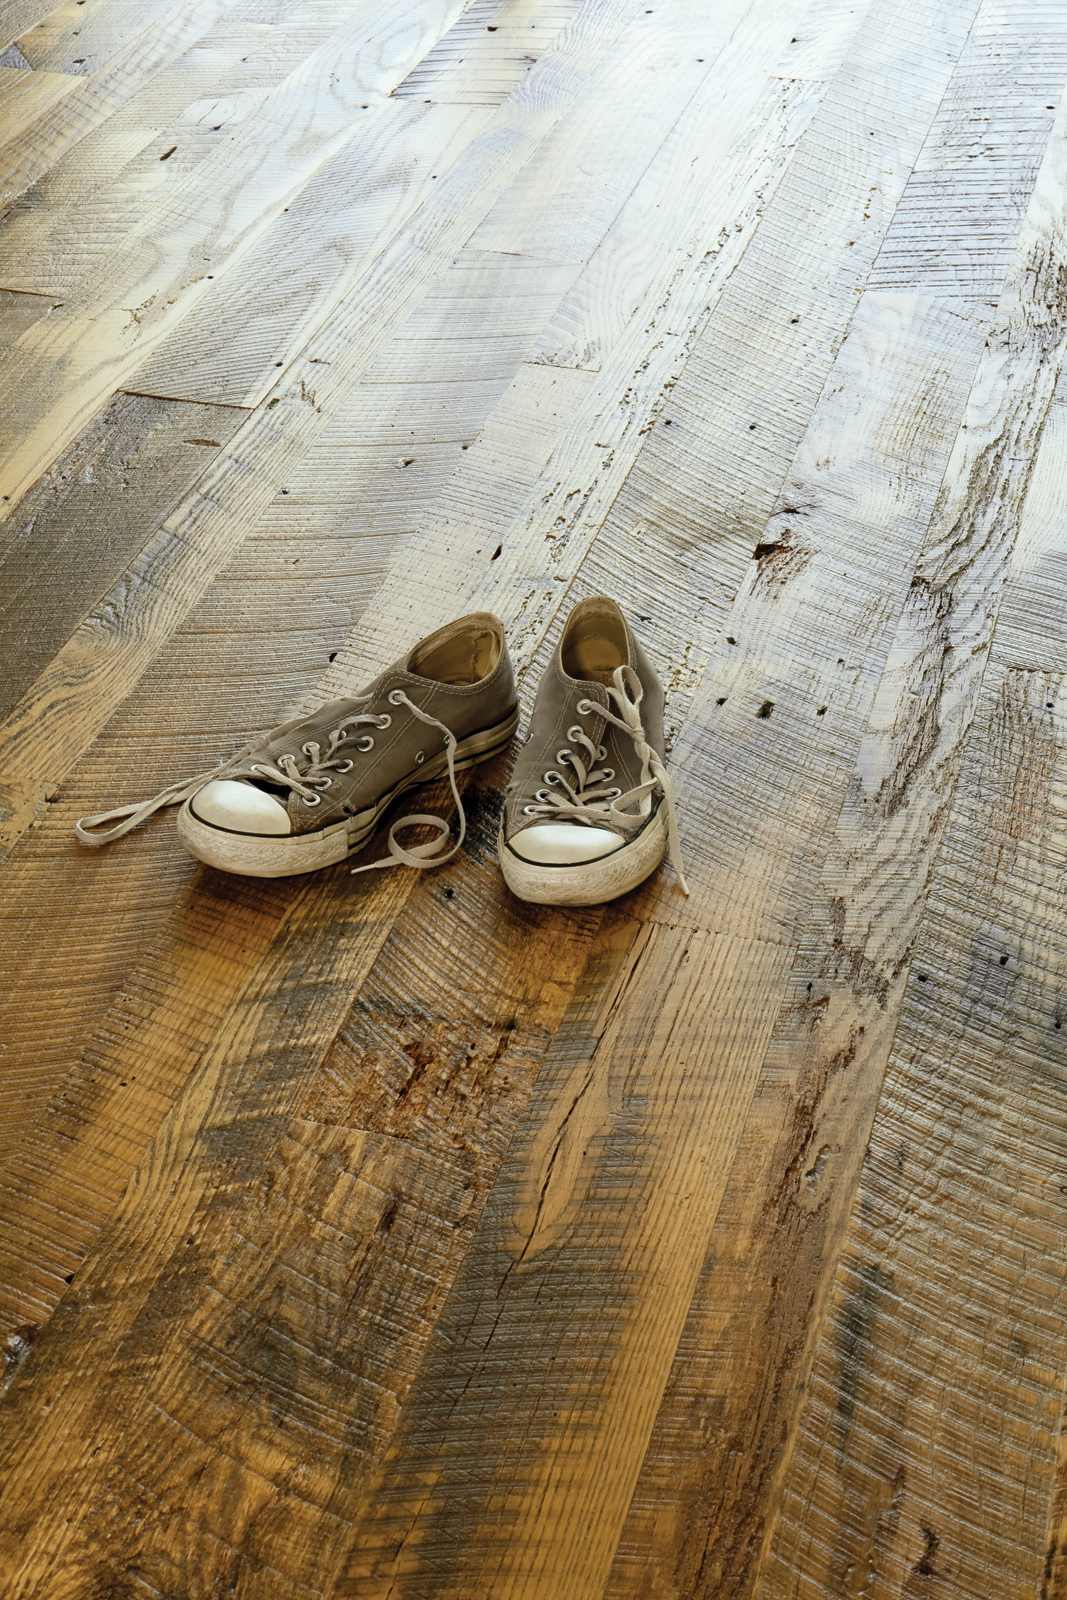 The wood floor of the Suttles and Shag residence reclaimed from a barn in Missouri.